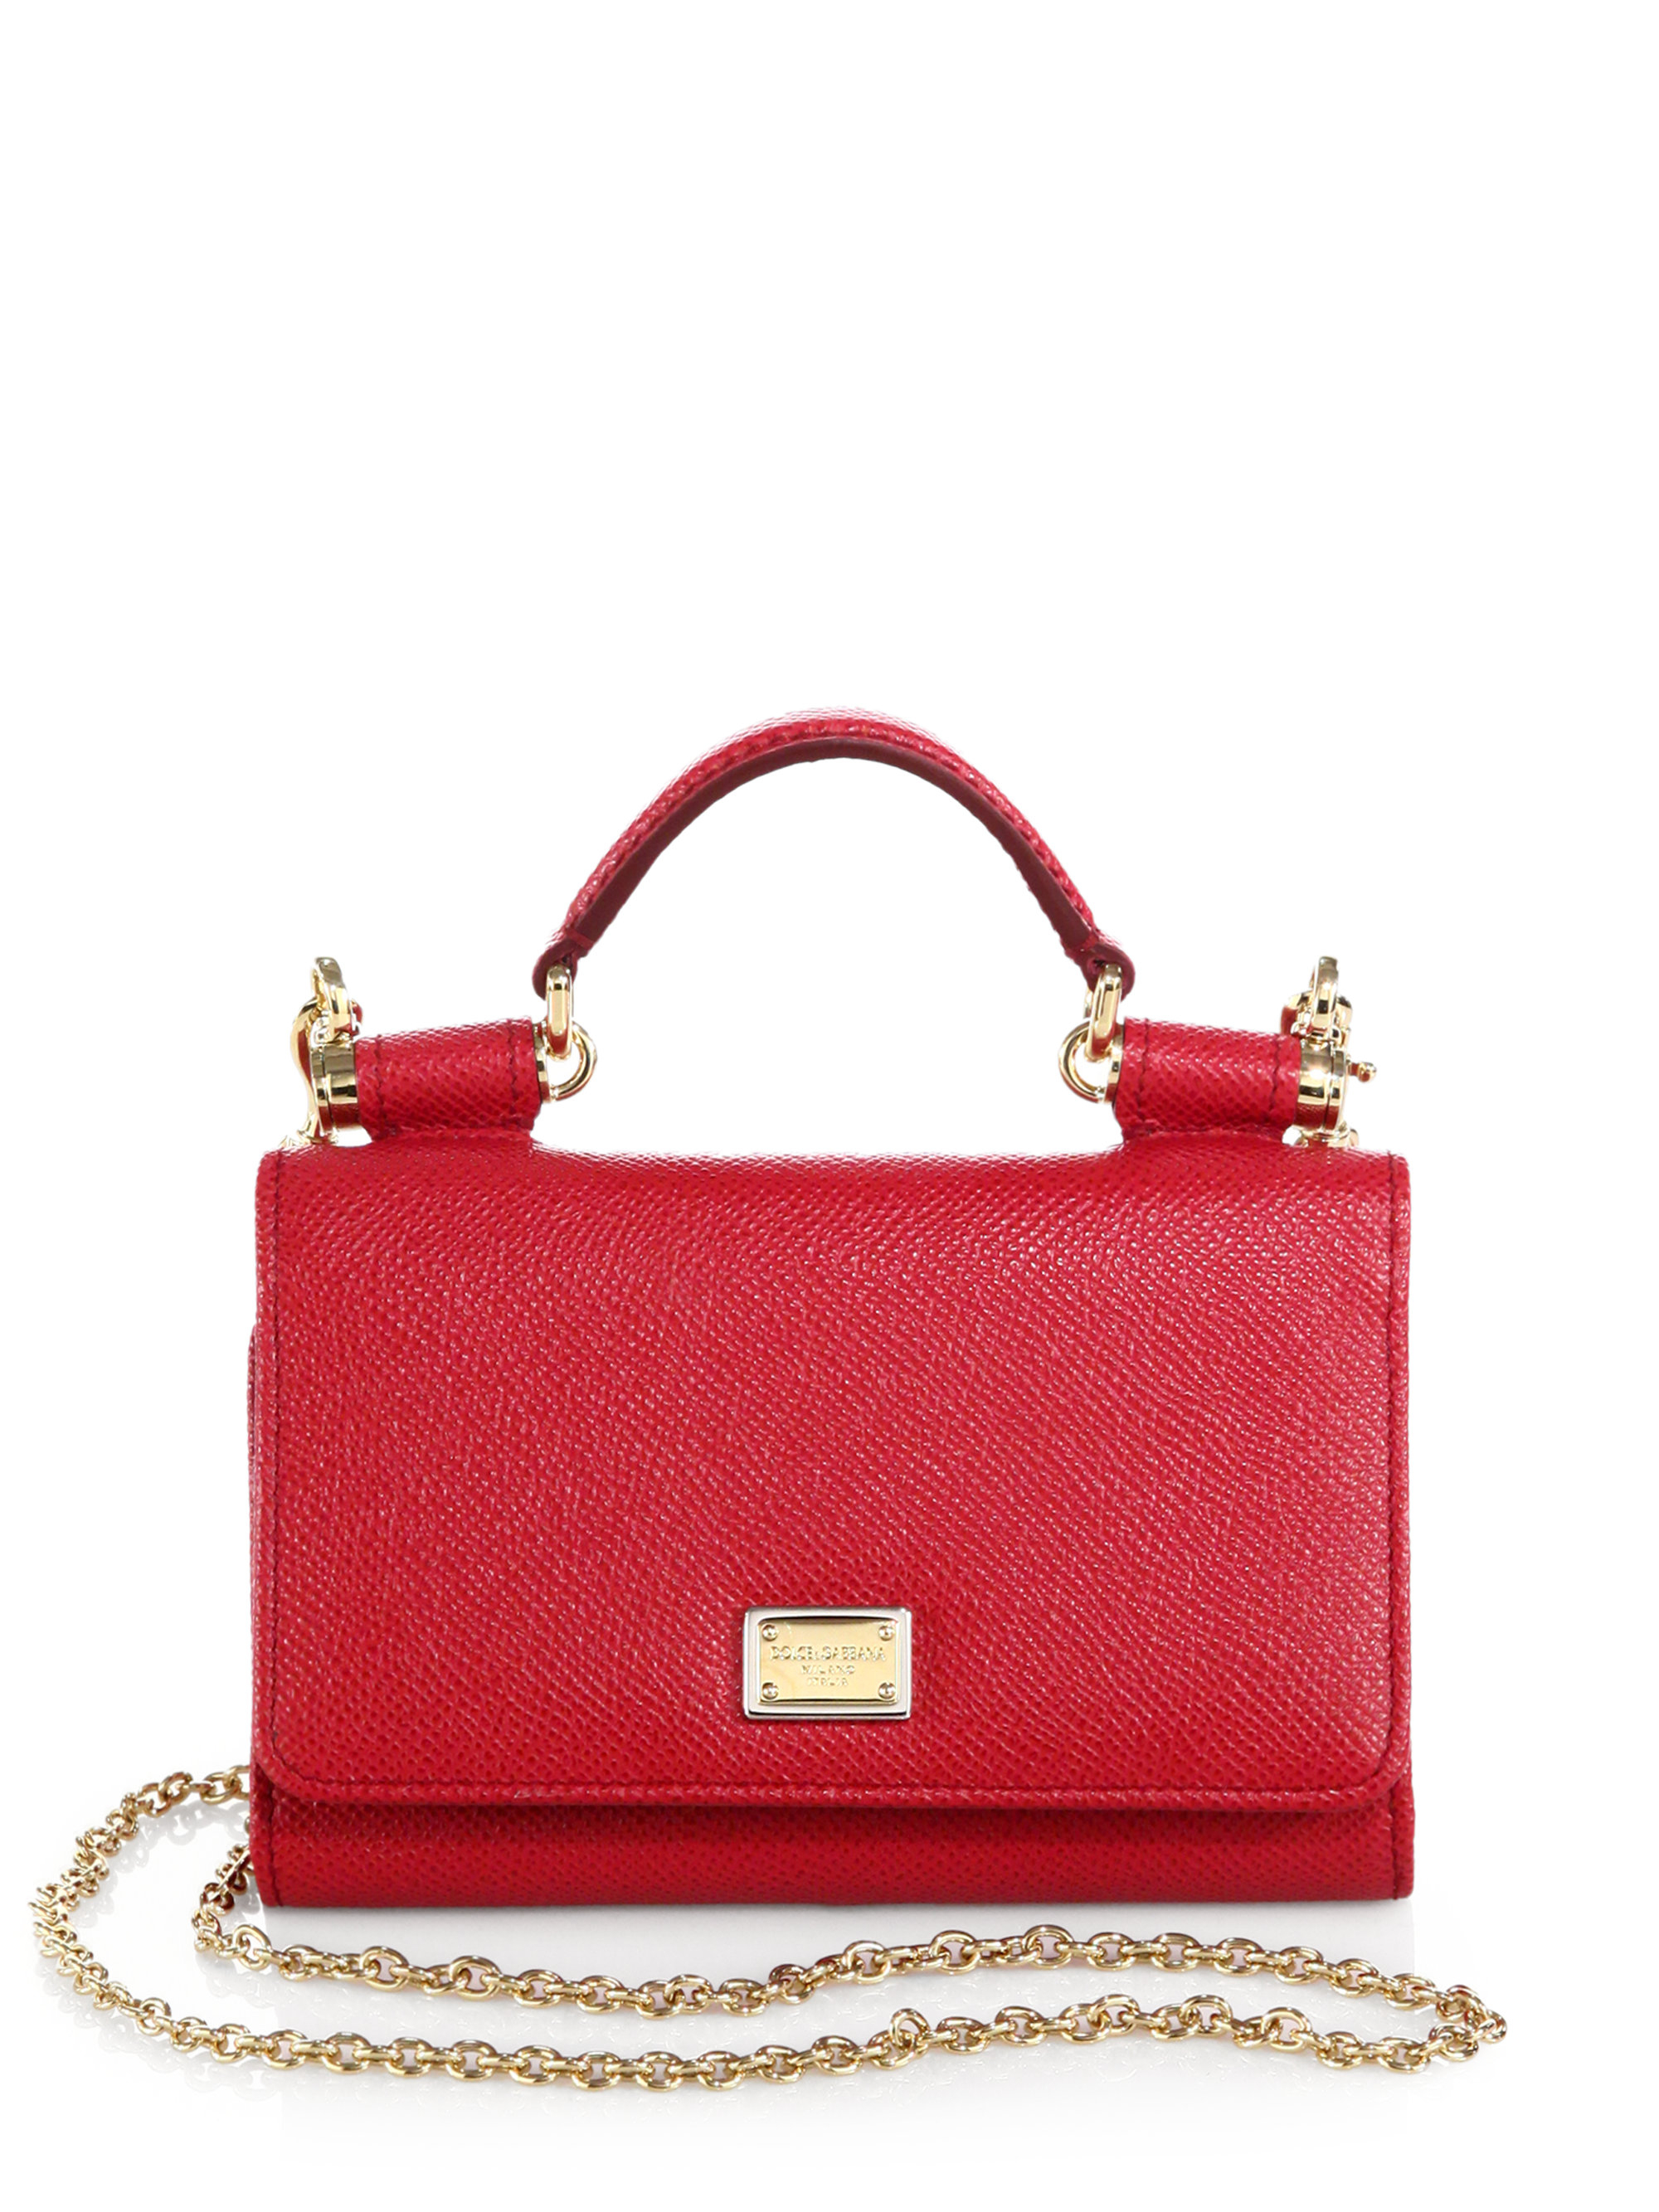 6b3064d5ca27 Gallery. Previously sold at  Saks Fifth Avenue · Women s Dolce Gabbana  Sicily Women s Victoria Beckham Pouch ...